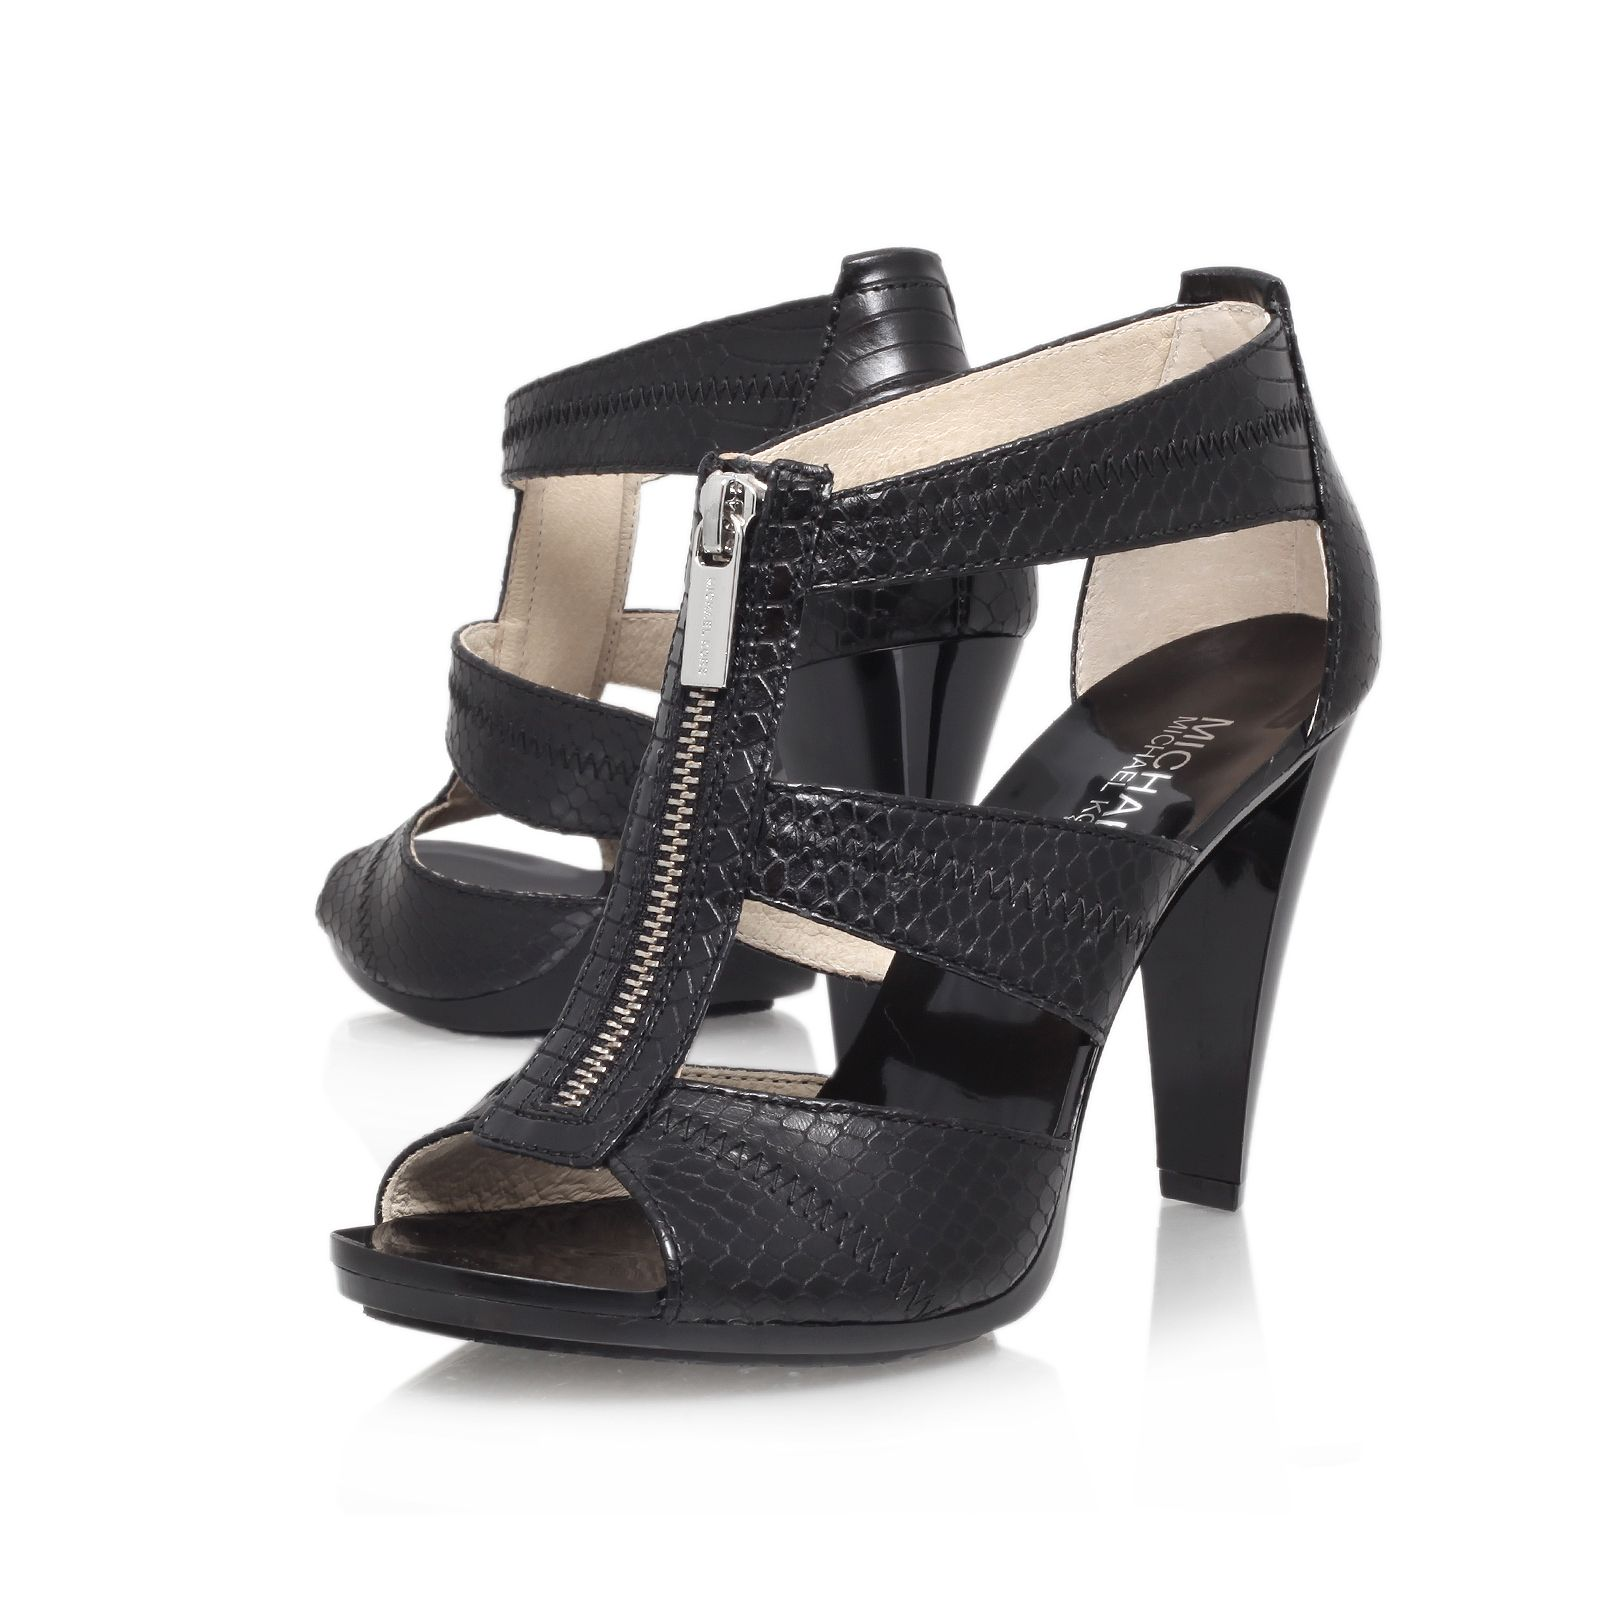 Berkley high heel sandals